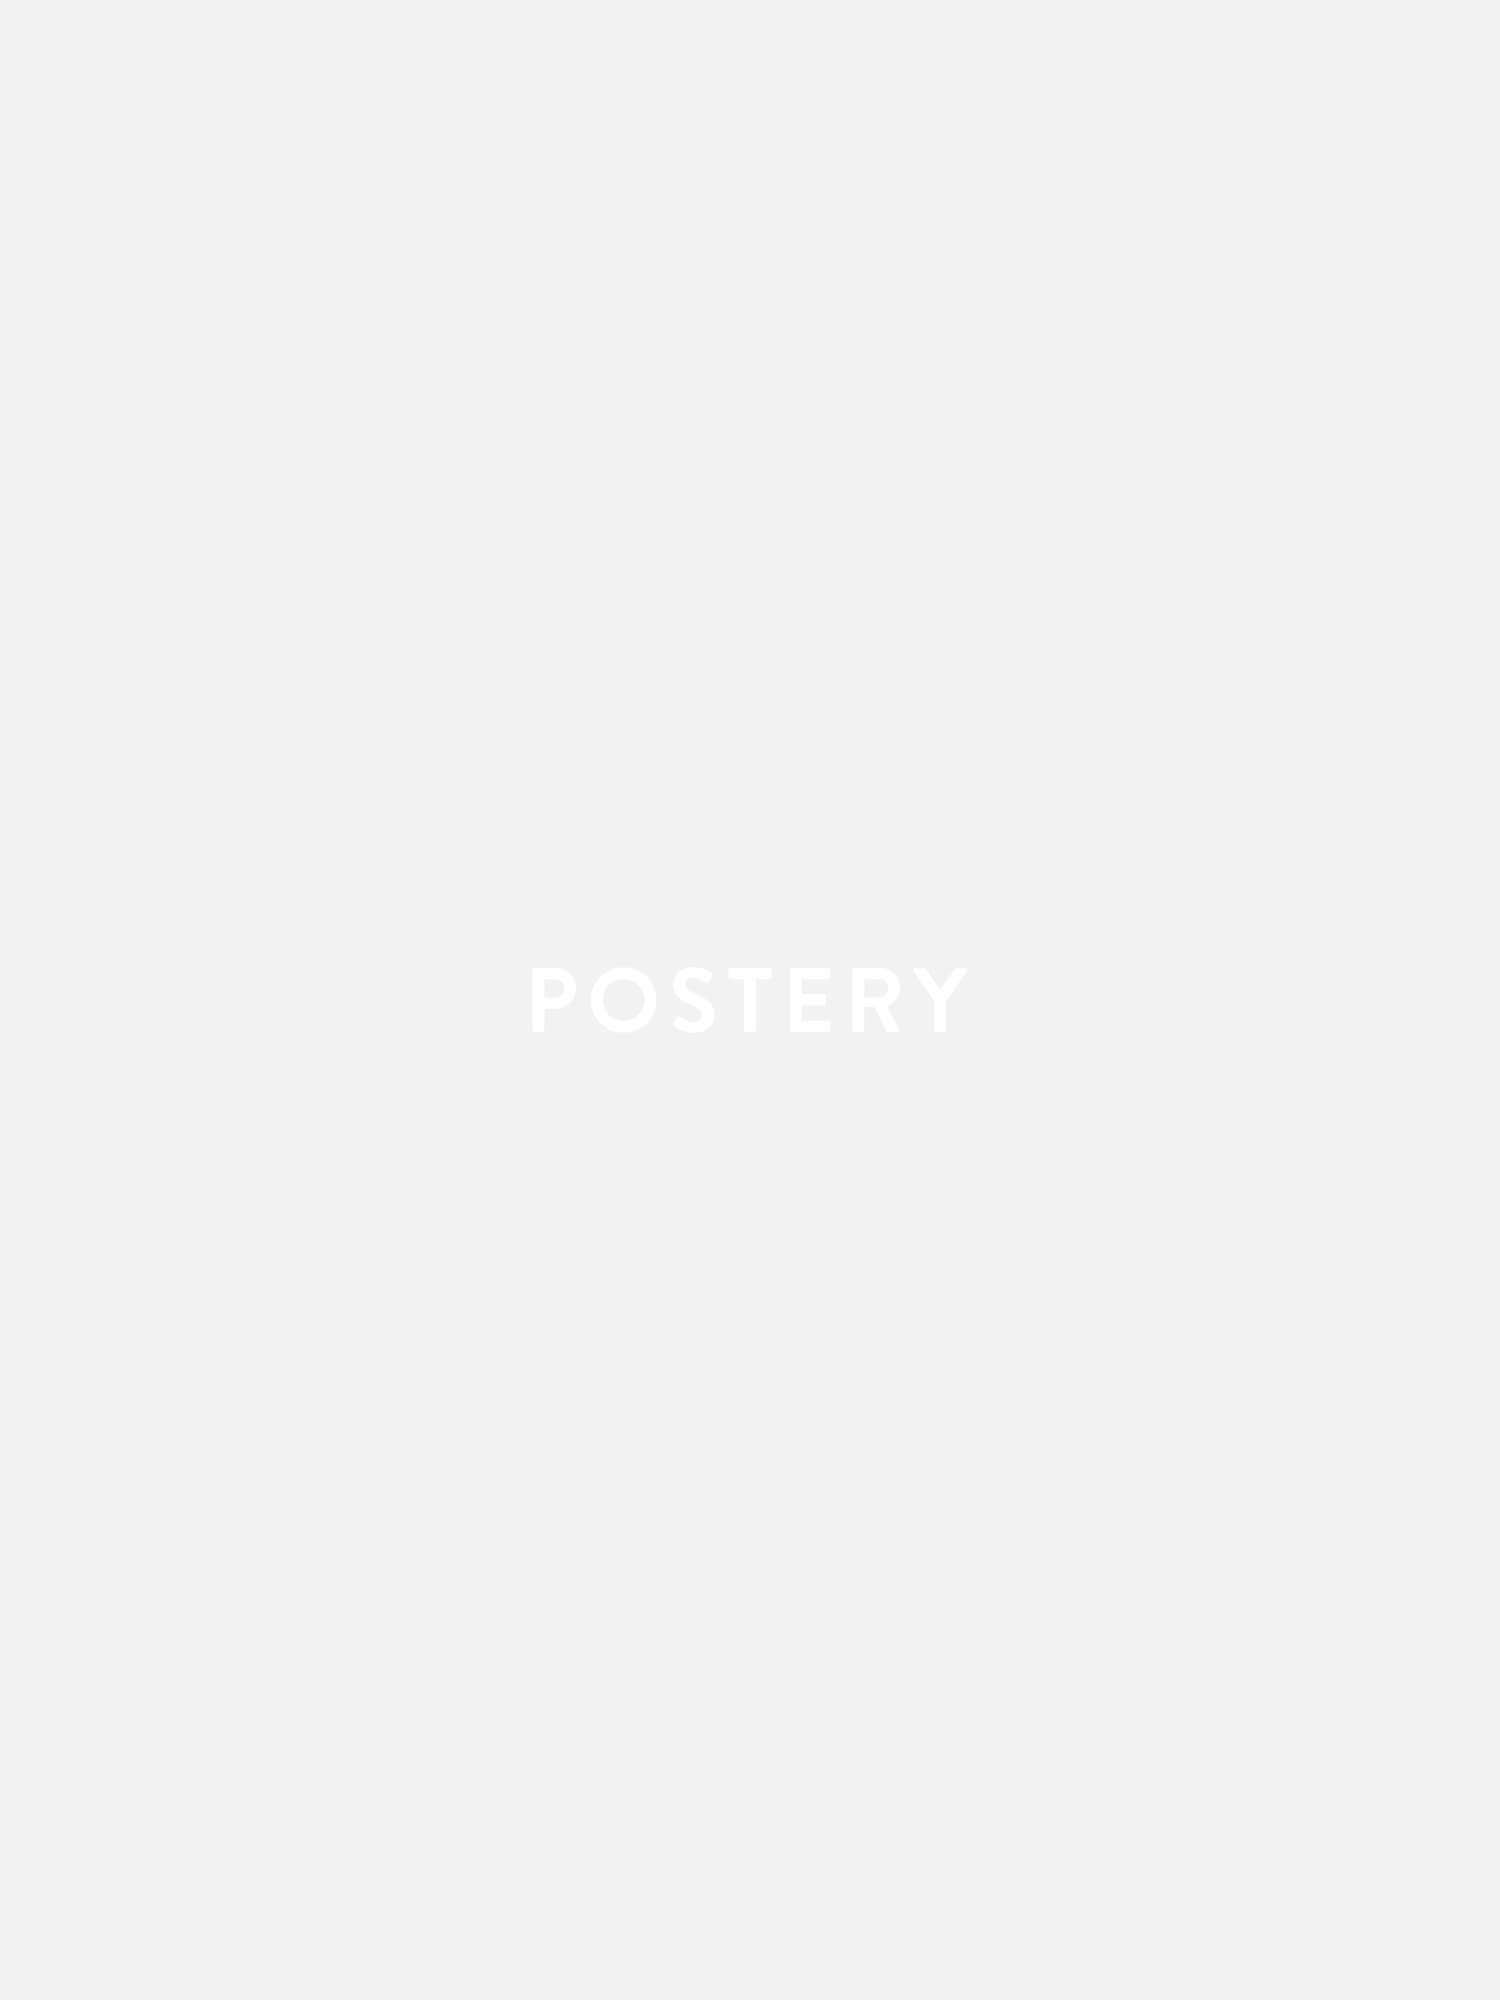 Gallery Wall #6964